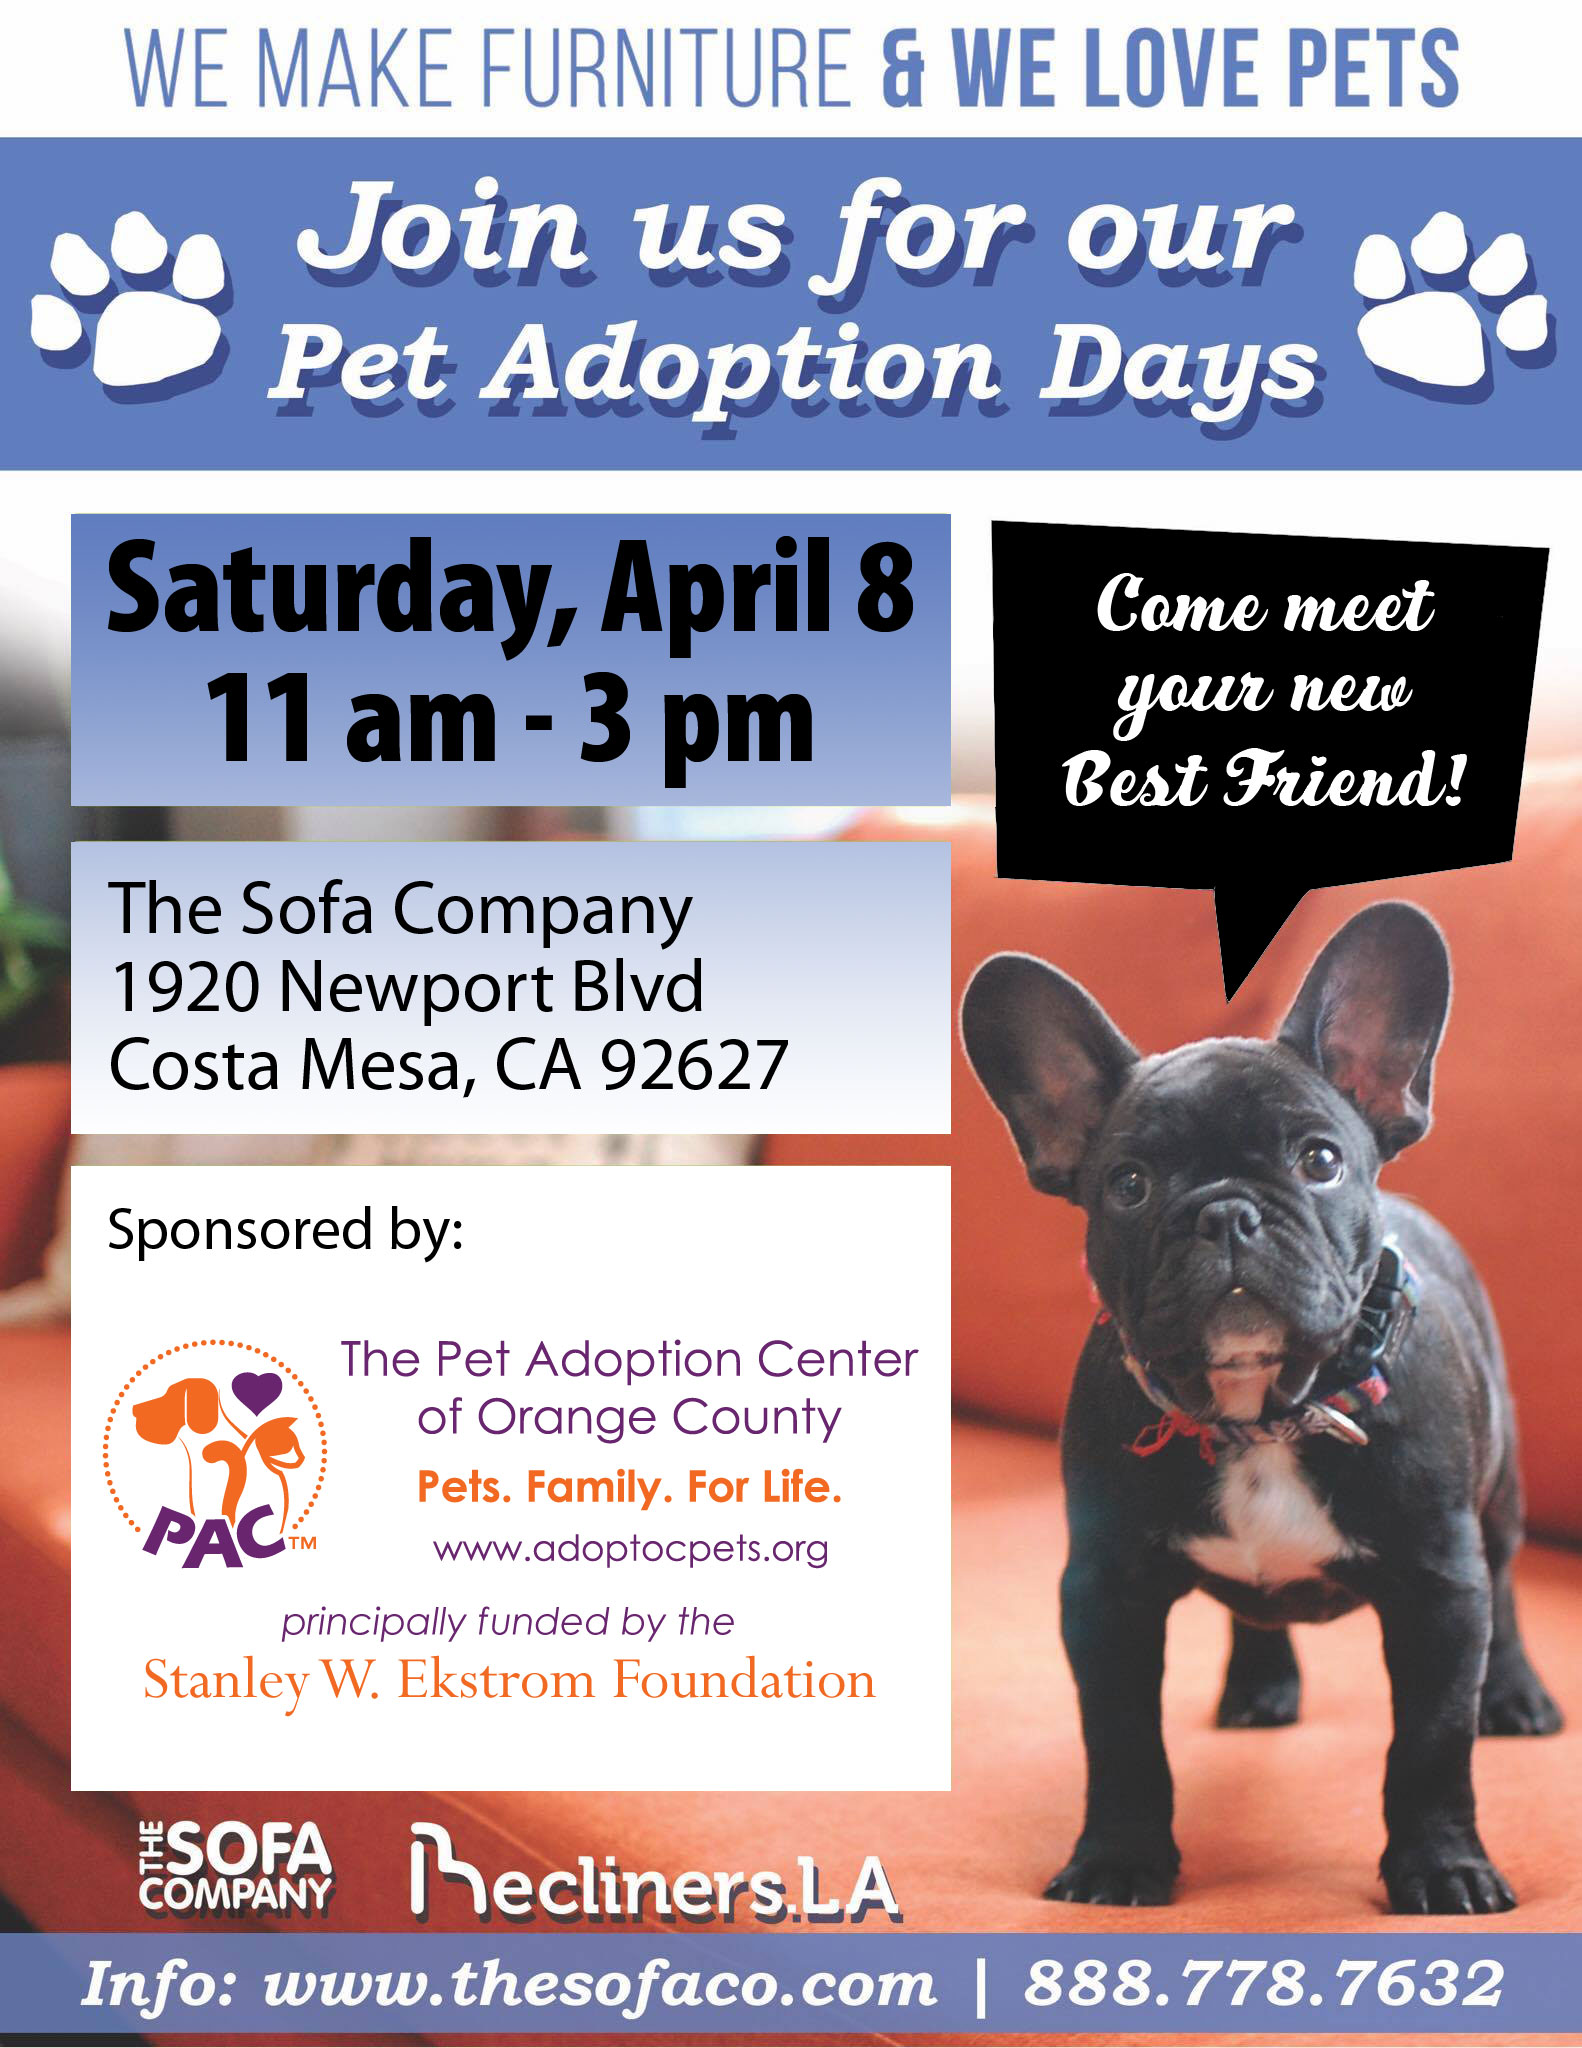 We Are Pleased To Be Chosen As The Sponsor Group For Sofa Company S Pet Adoption Days On Saay April 8 From 11 Am 3 Pm